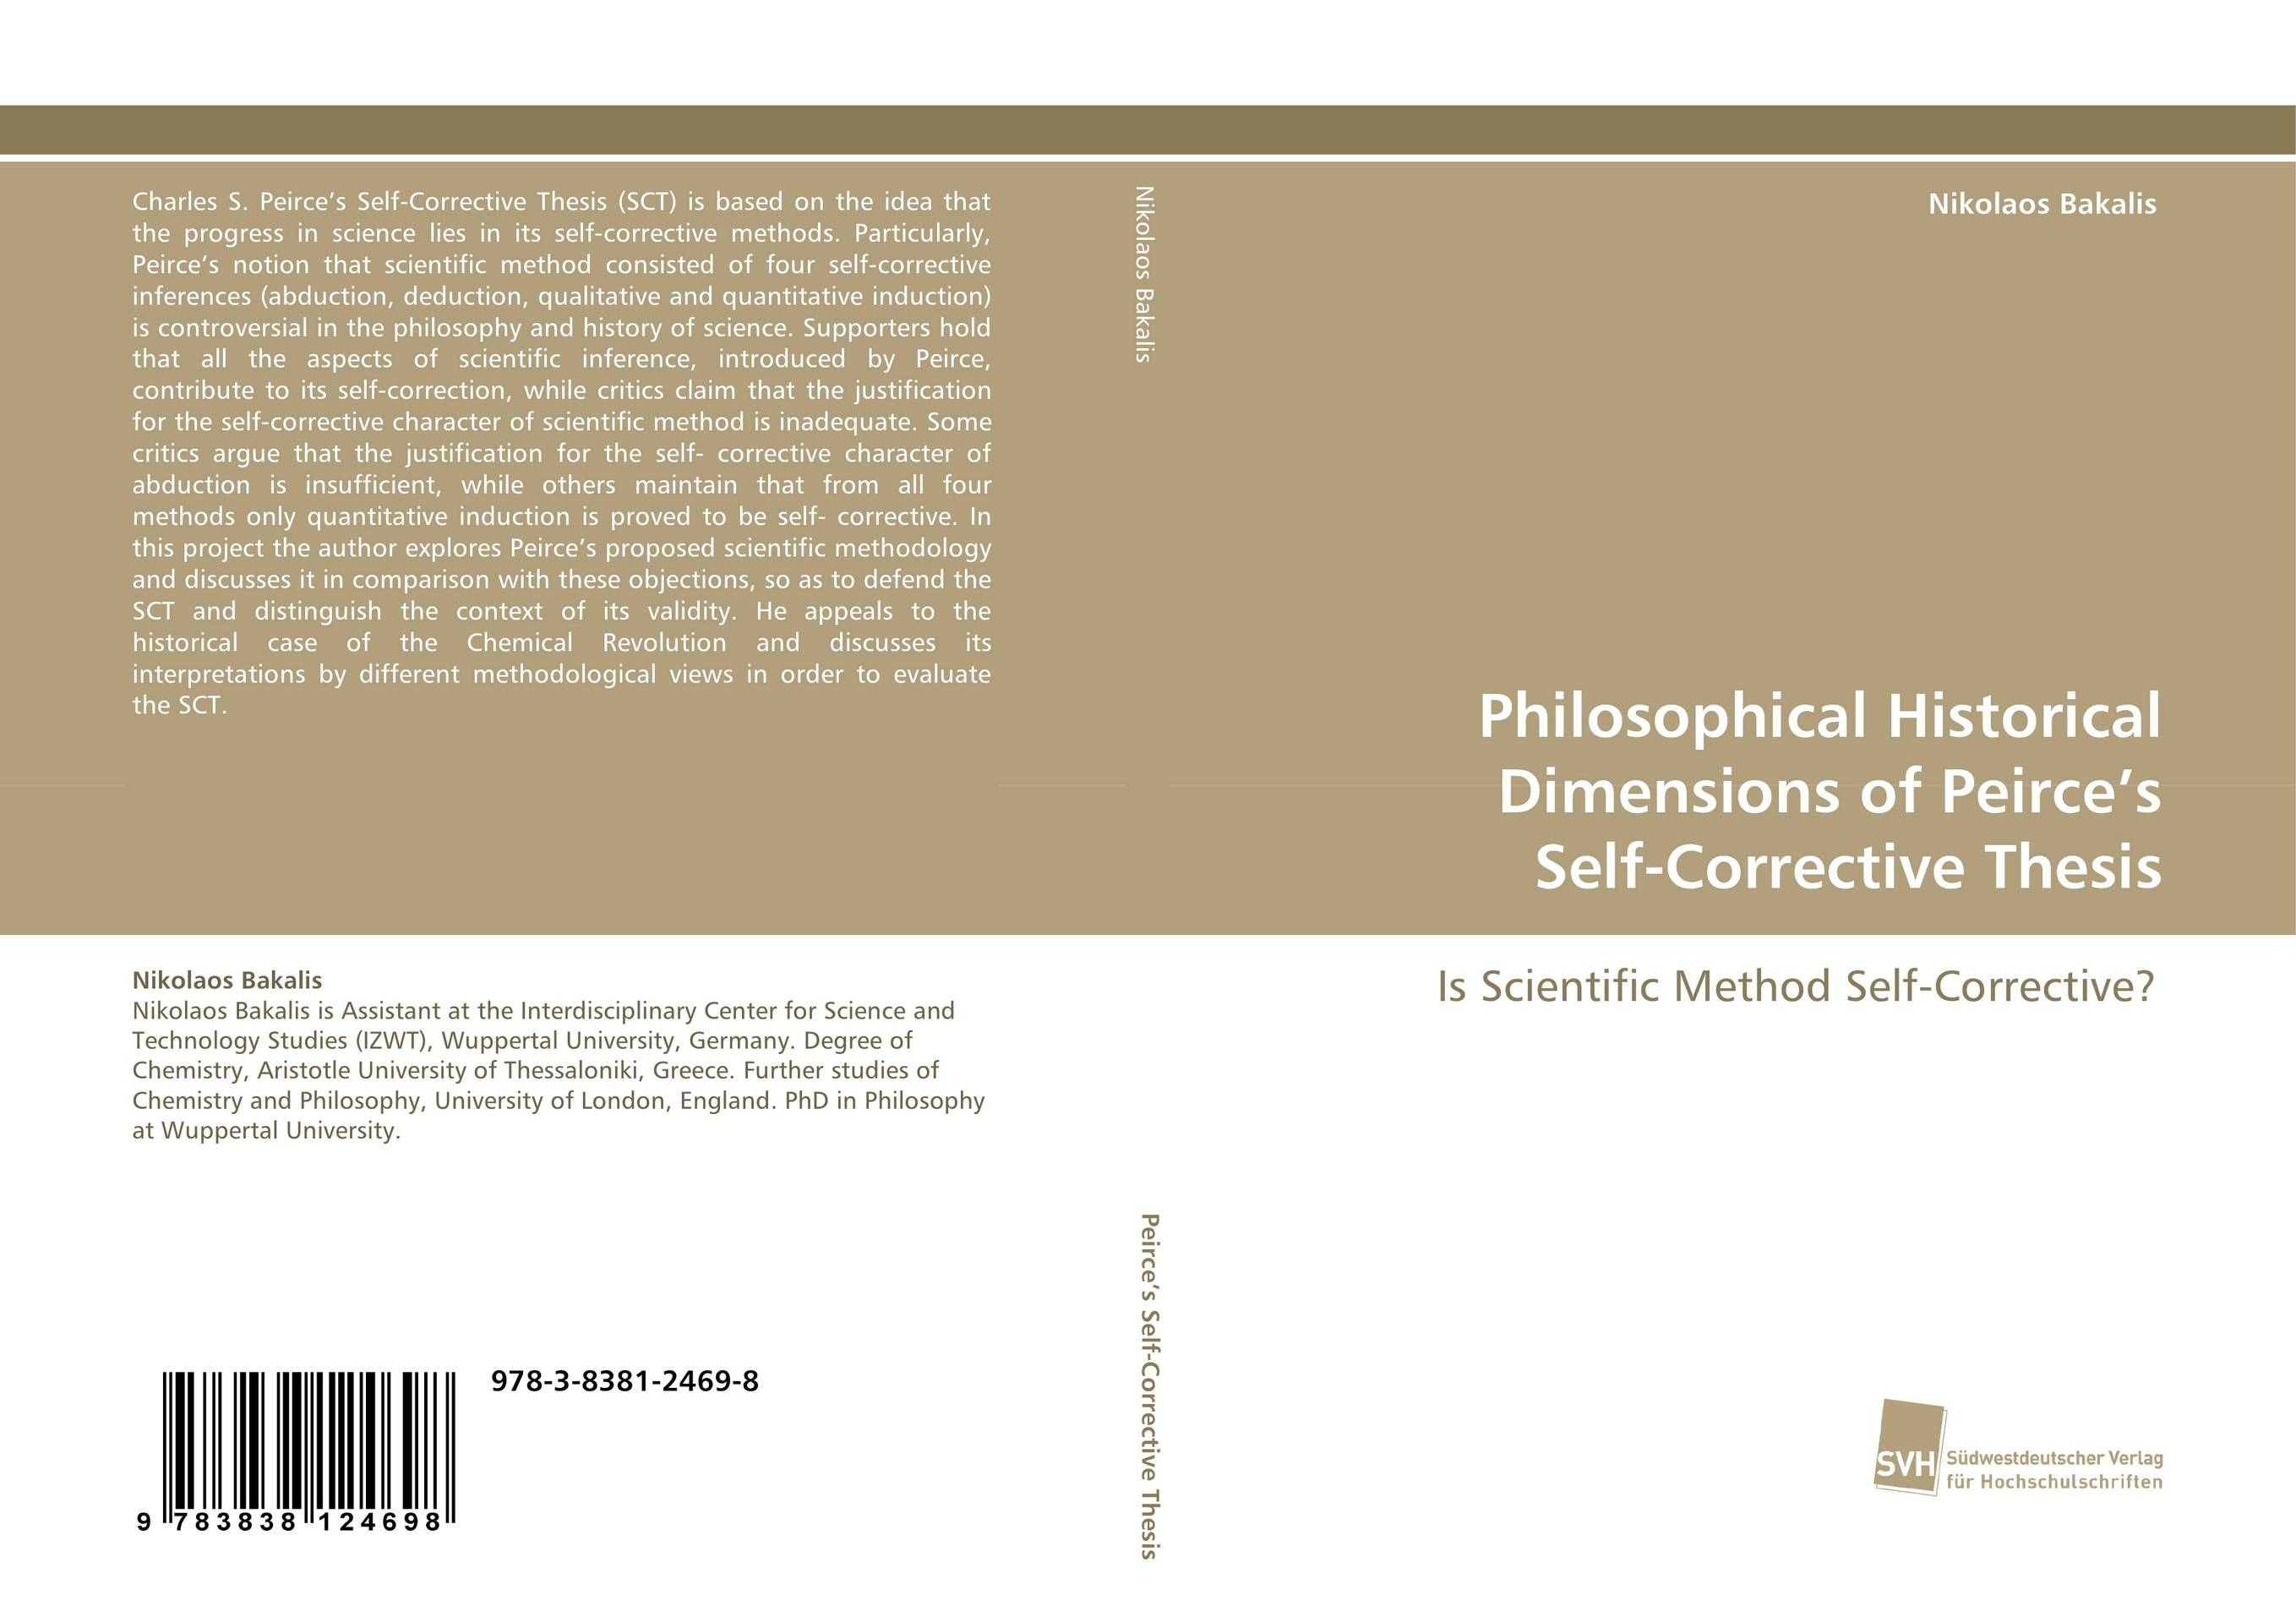 Philosophical Historical Dimensions of Peirce's Self-Corrective Thesis